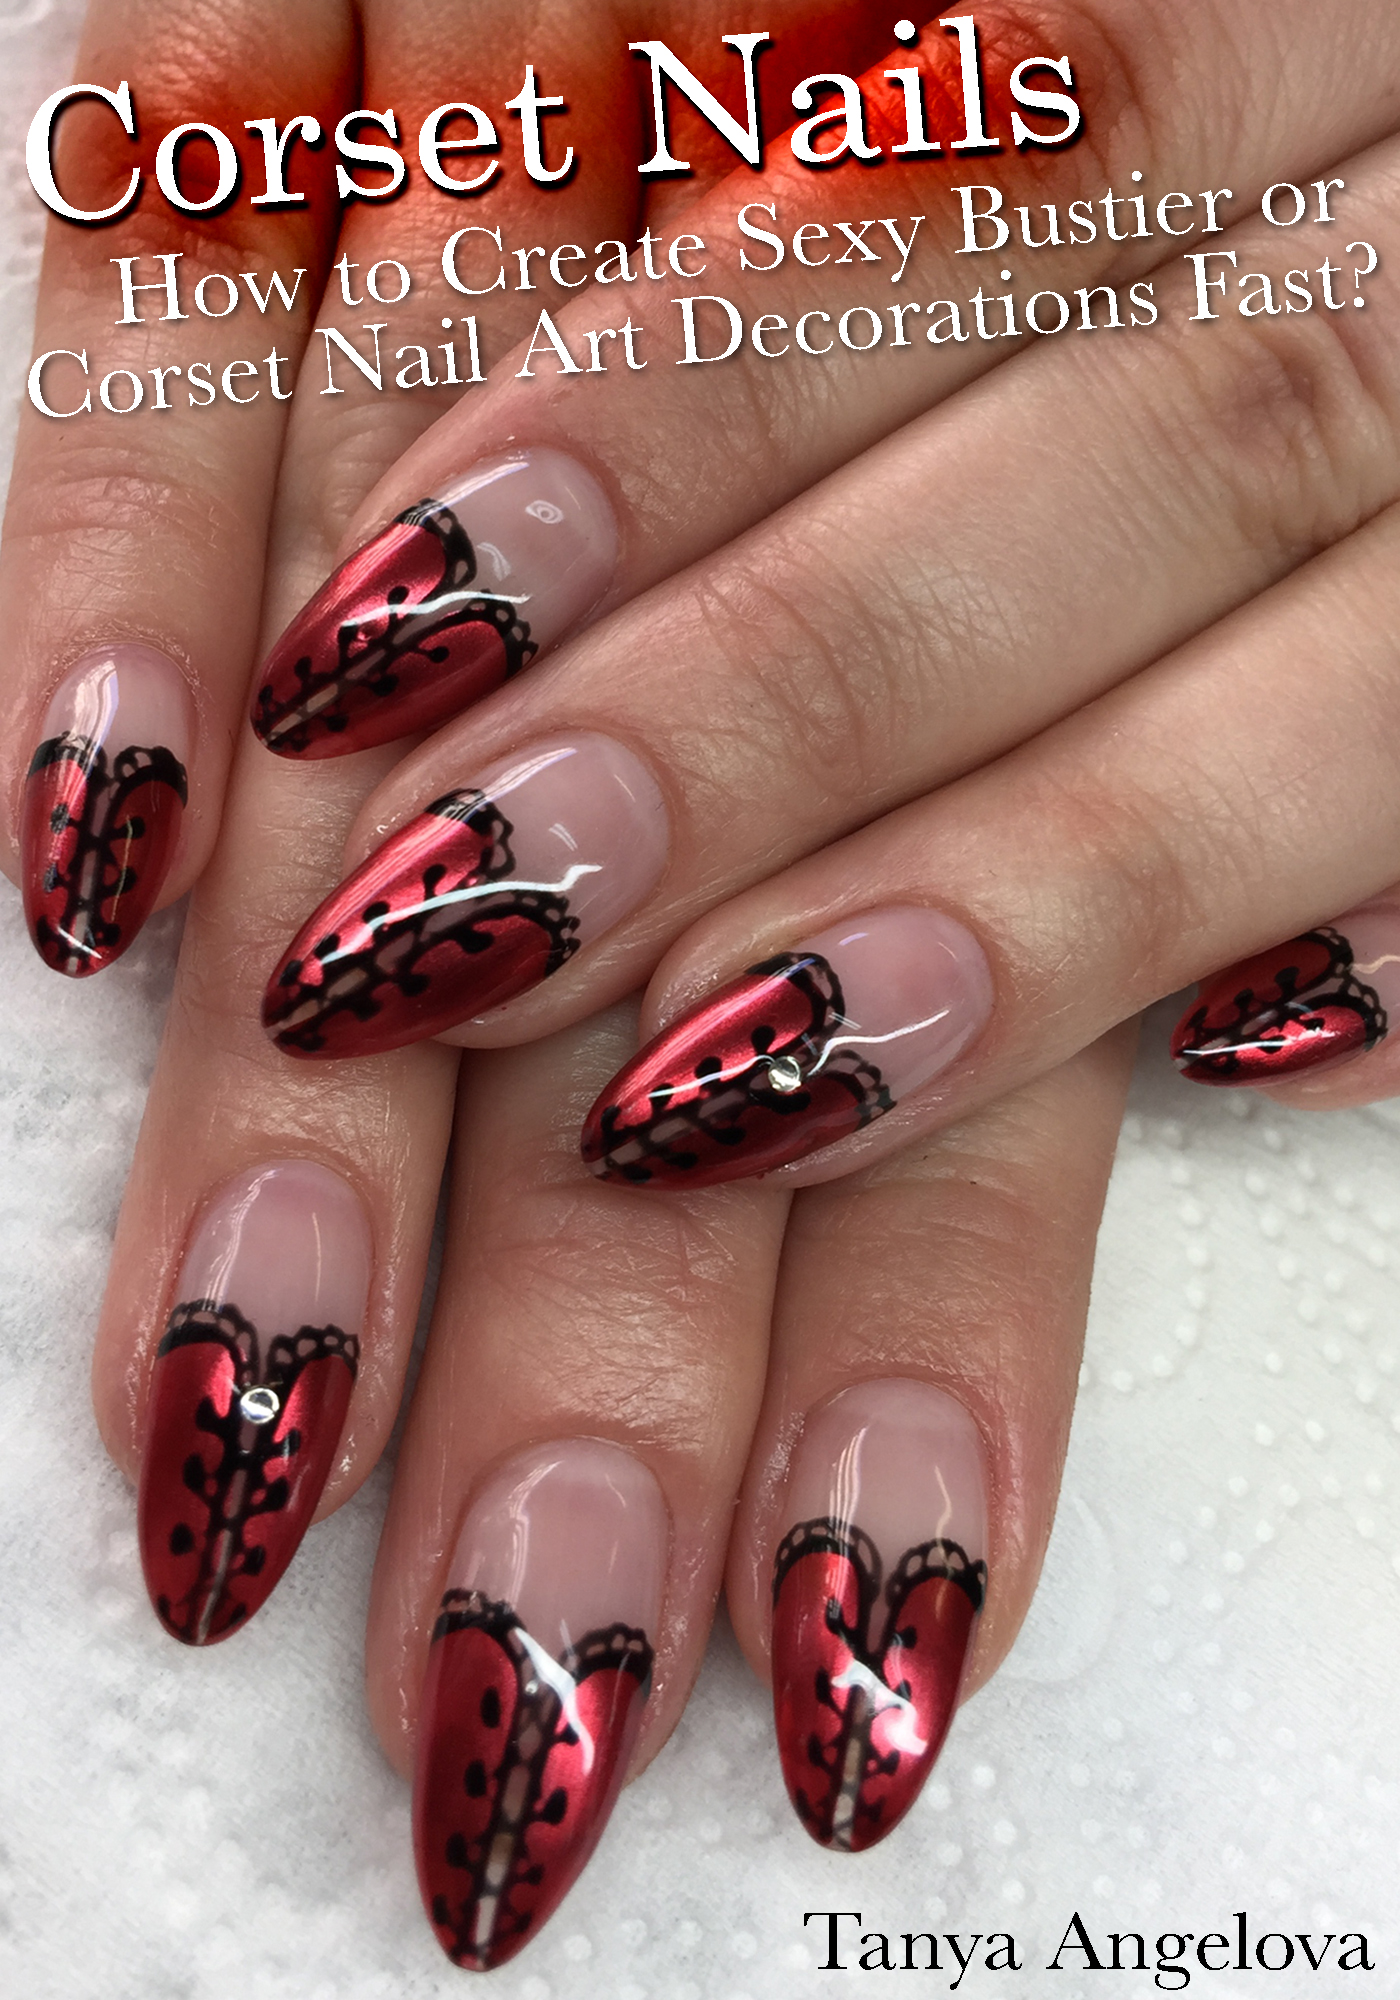 Smashwords Corset Nails How To Create Sexy Bustier Or Corset Nail